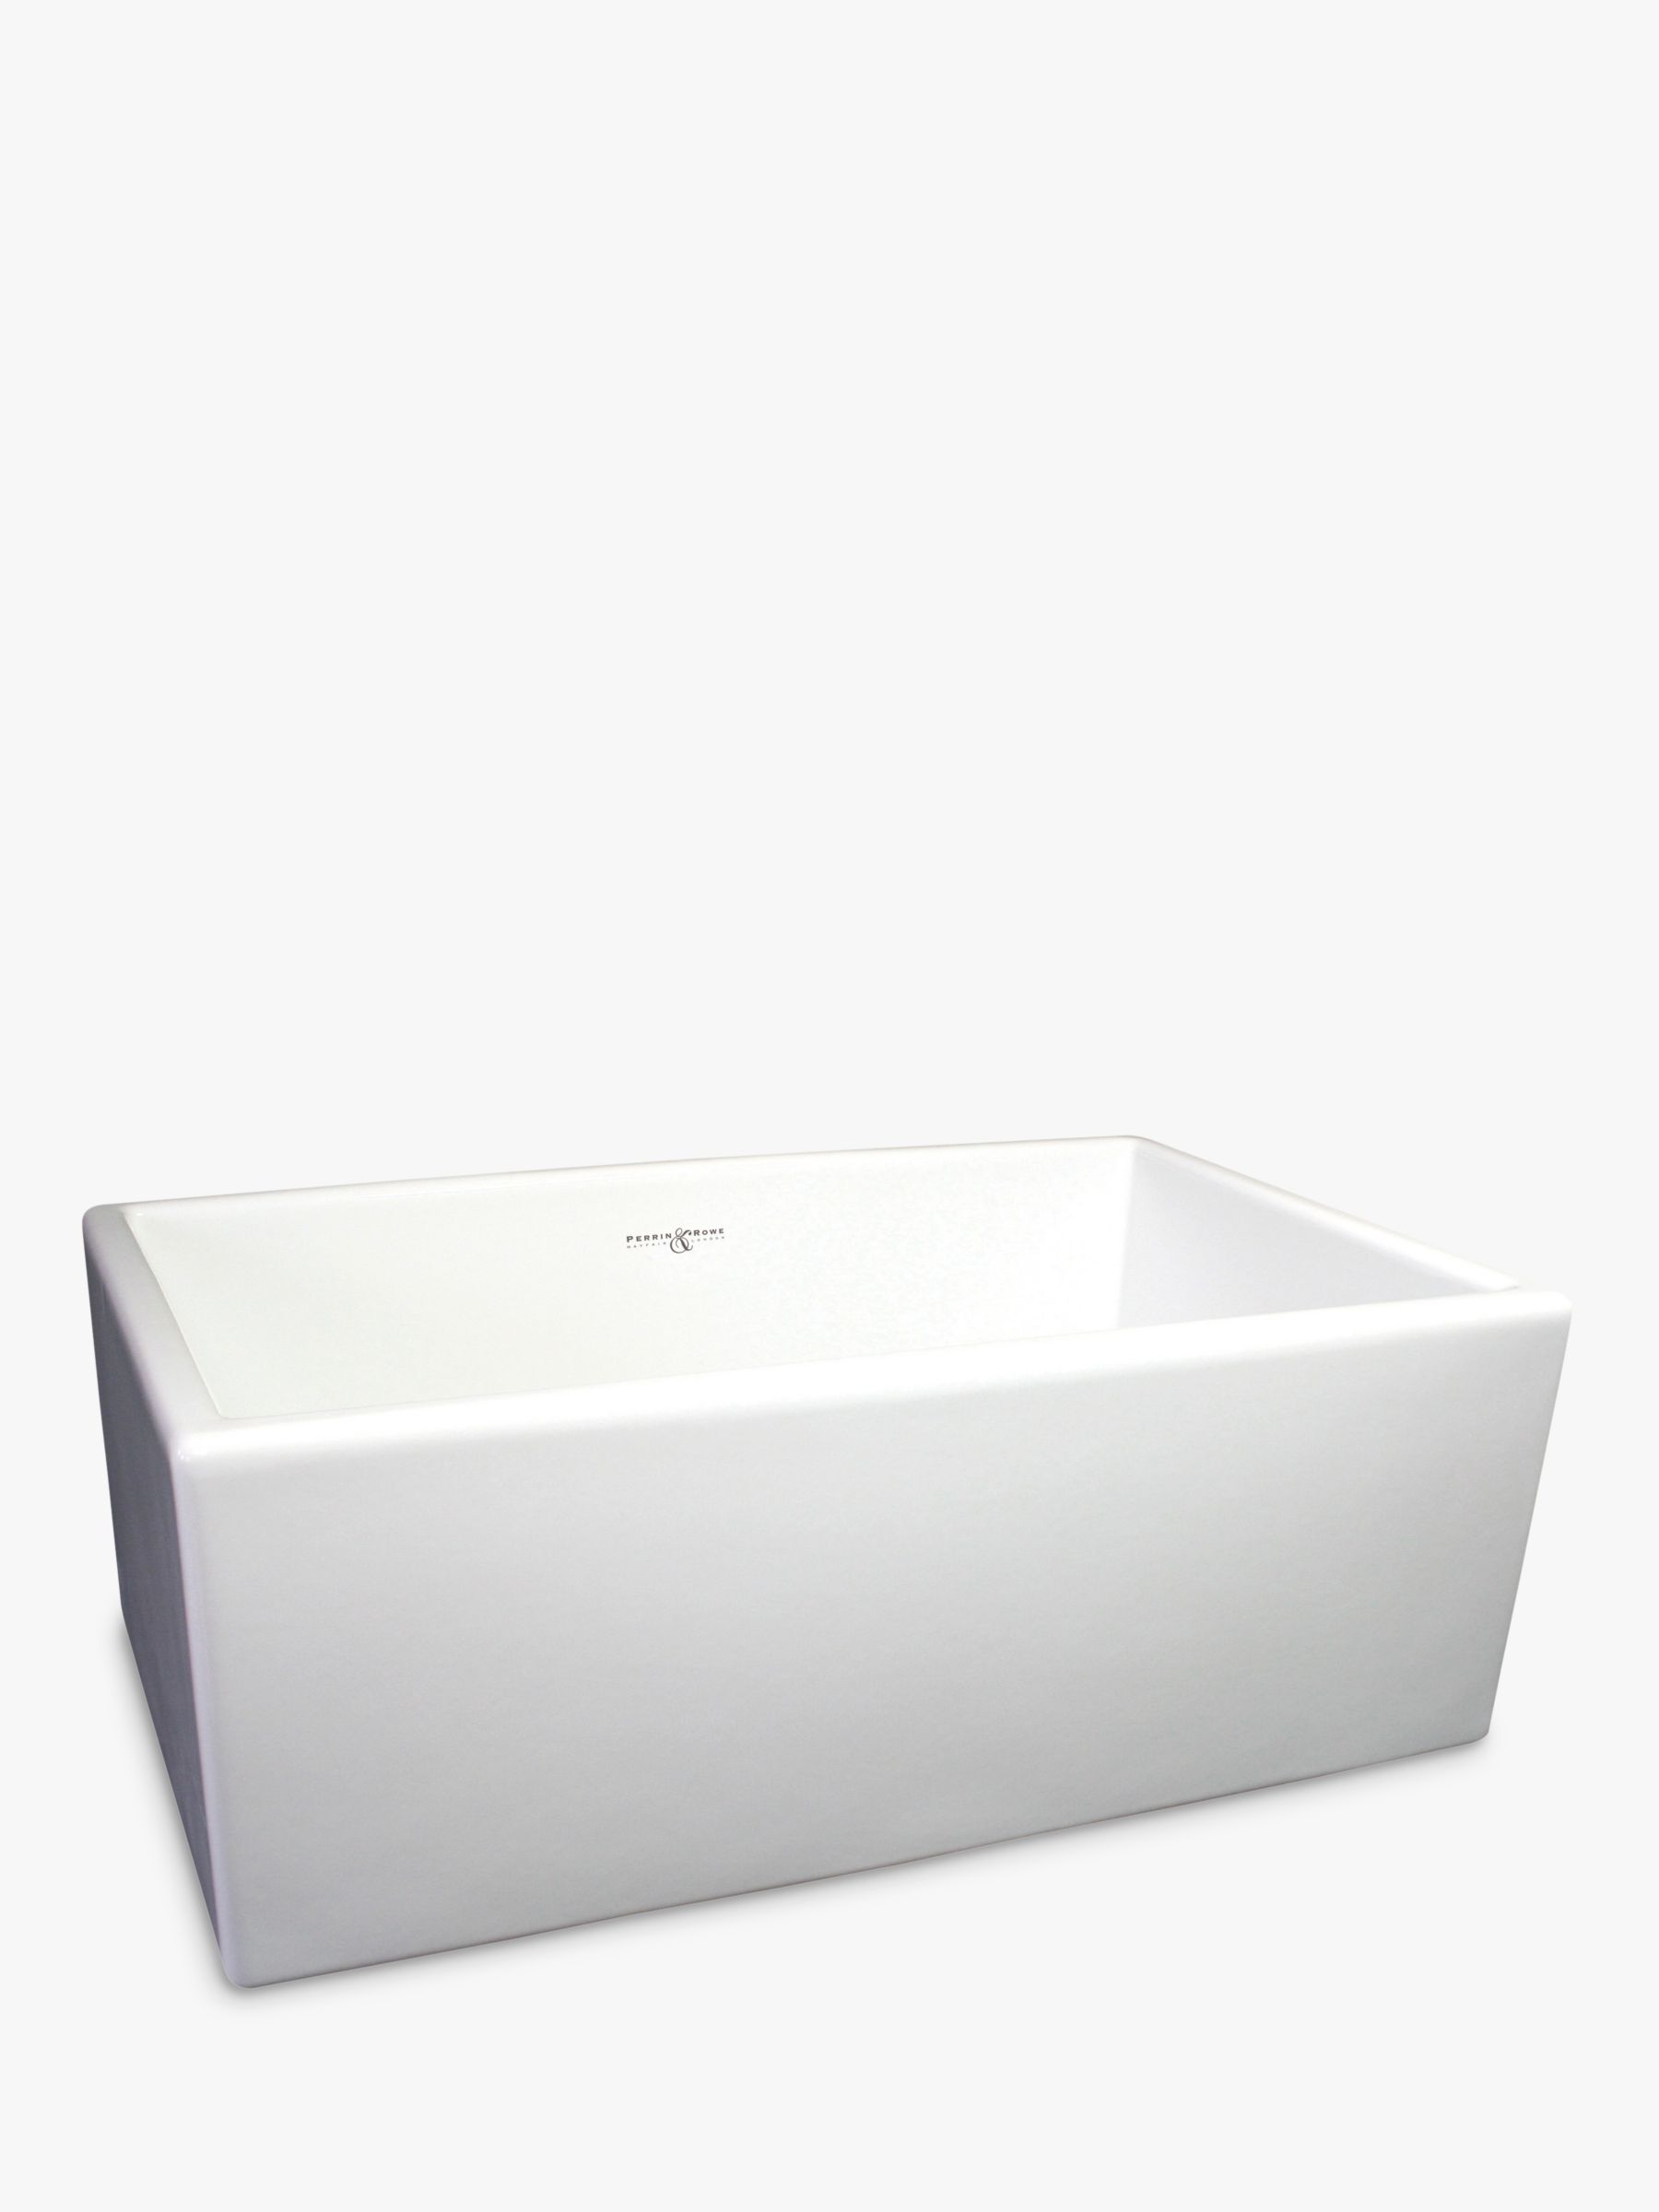 kitchen sink white storage carts sinks diy home garden john lewis partners perrin rowe shaker 800 single bowl farmhouse ceramic